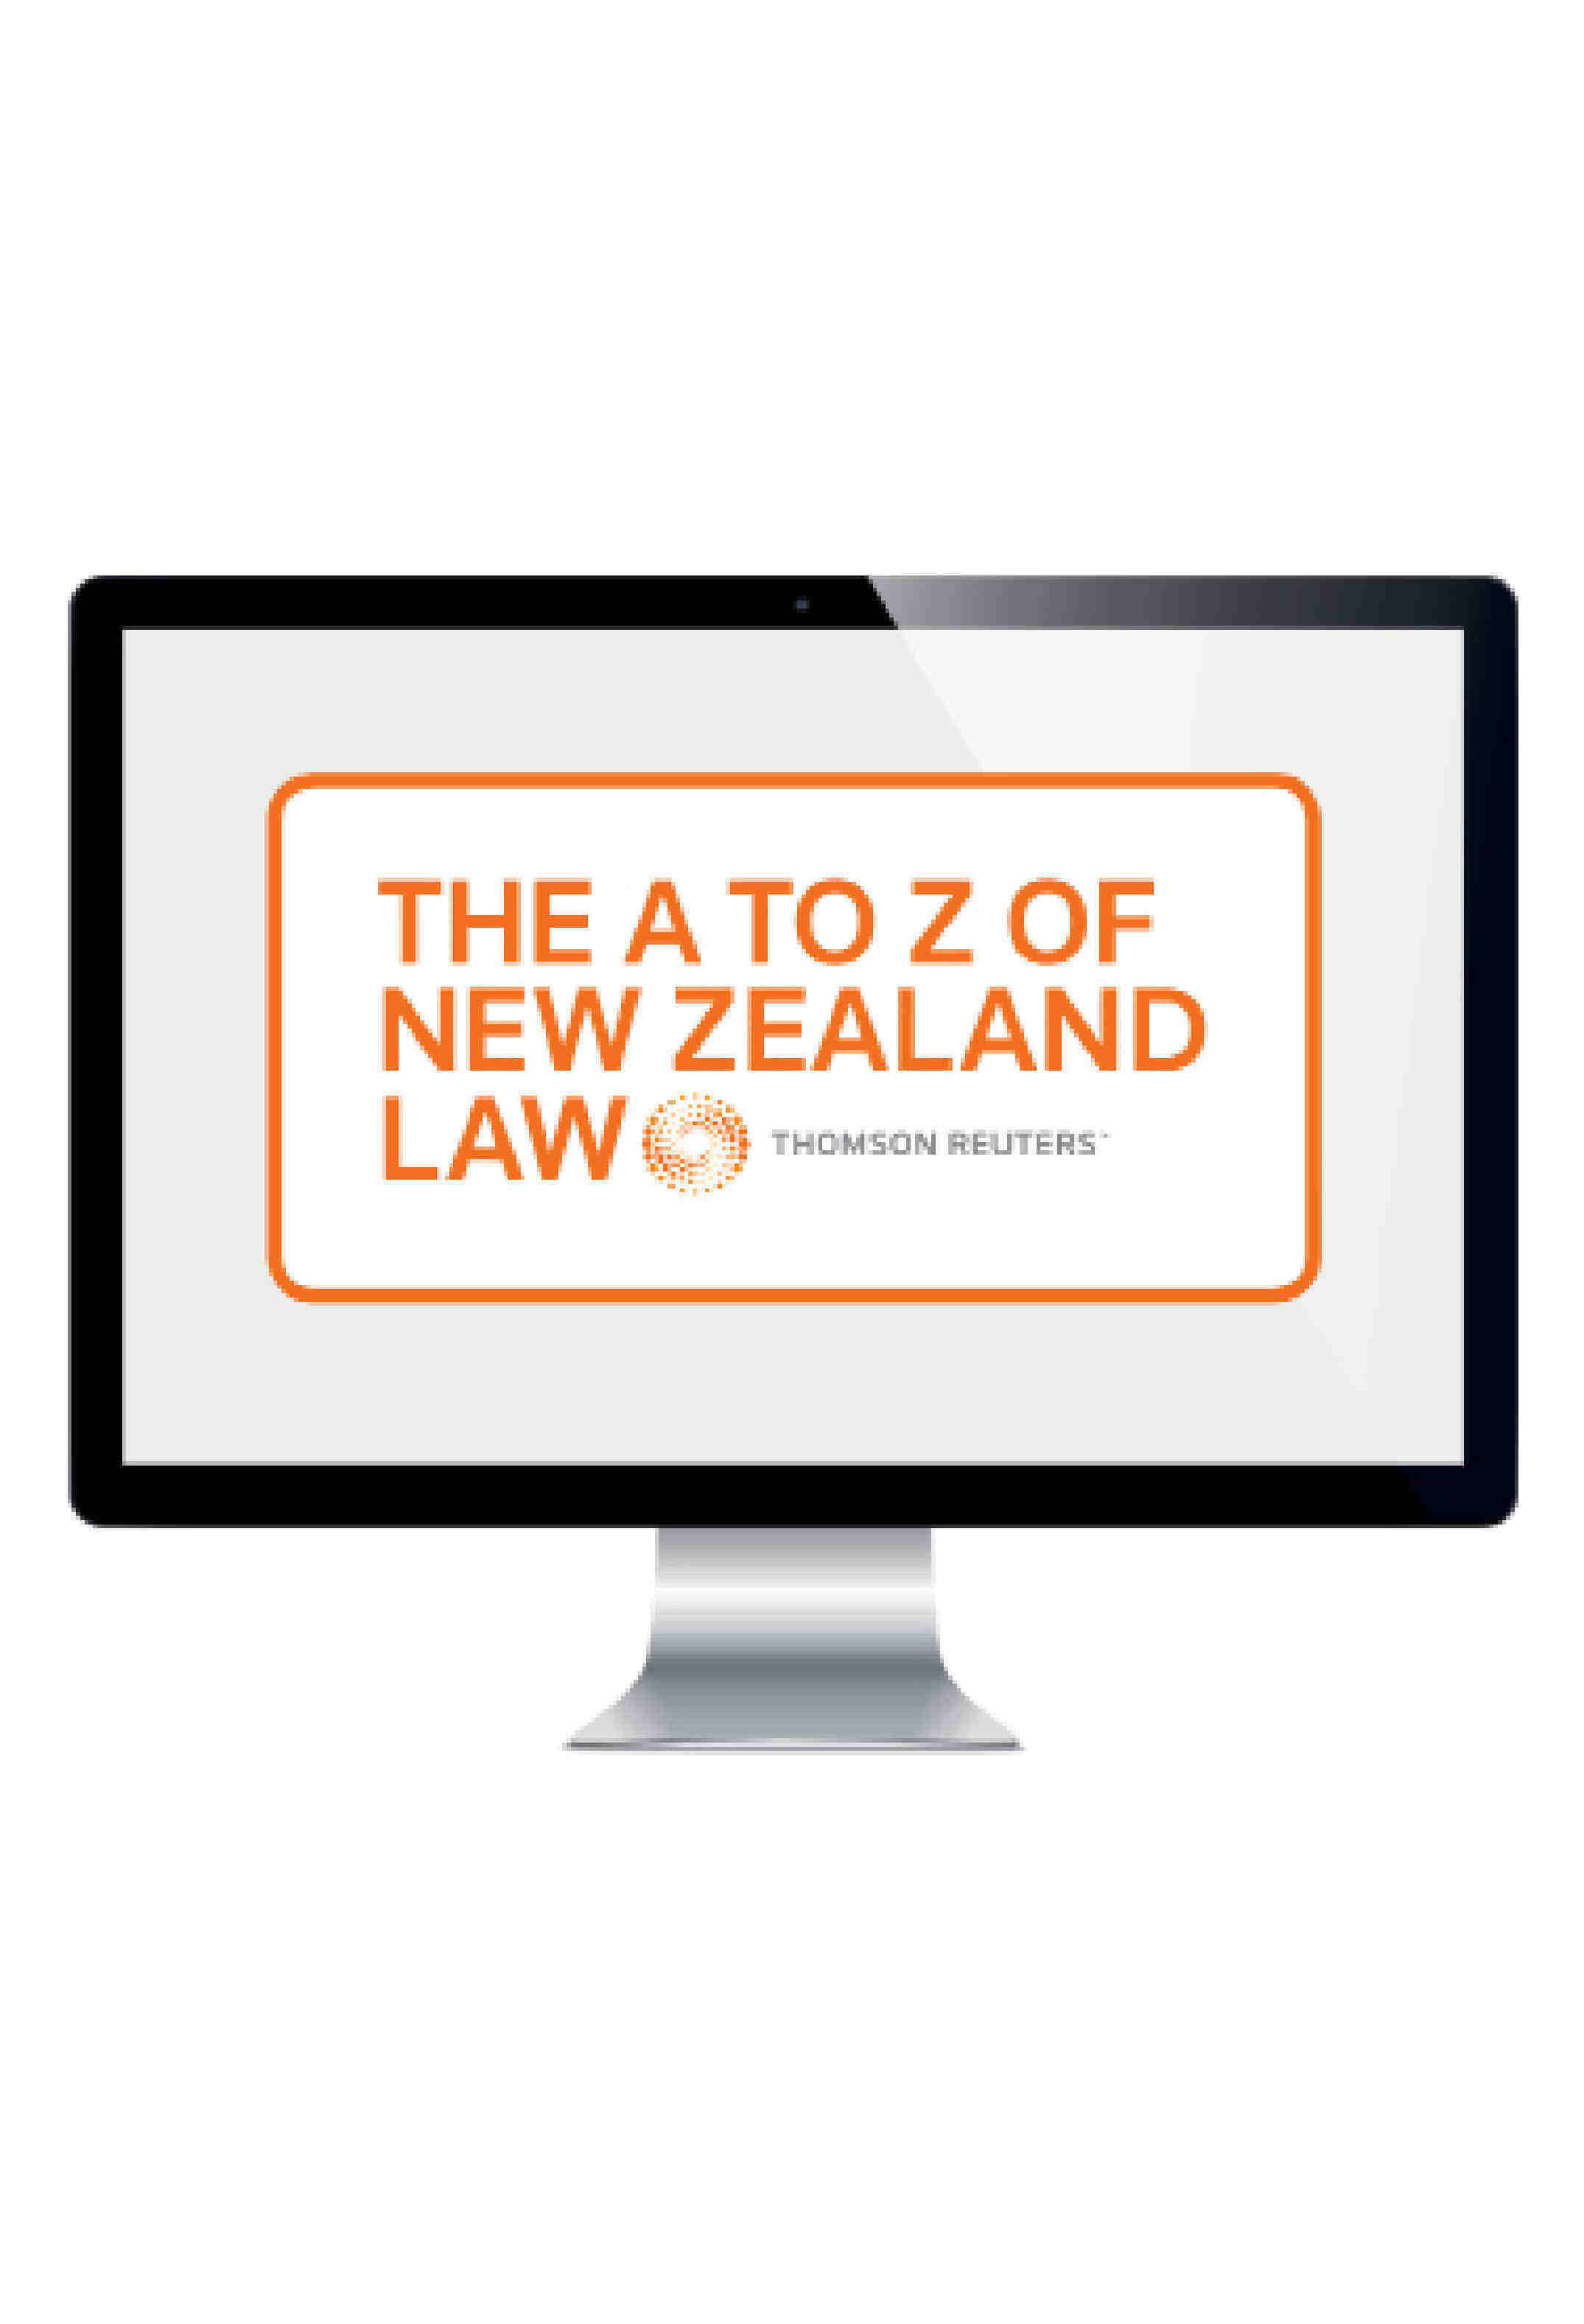 A to Z of NZ Law - Commercial Law, Securities - Westlaw NZ